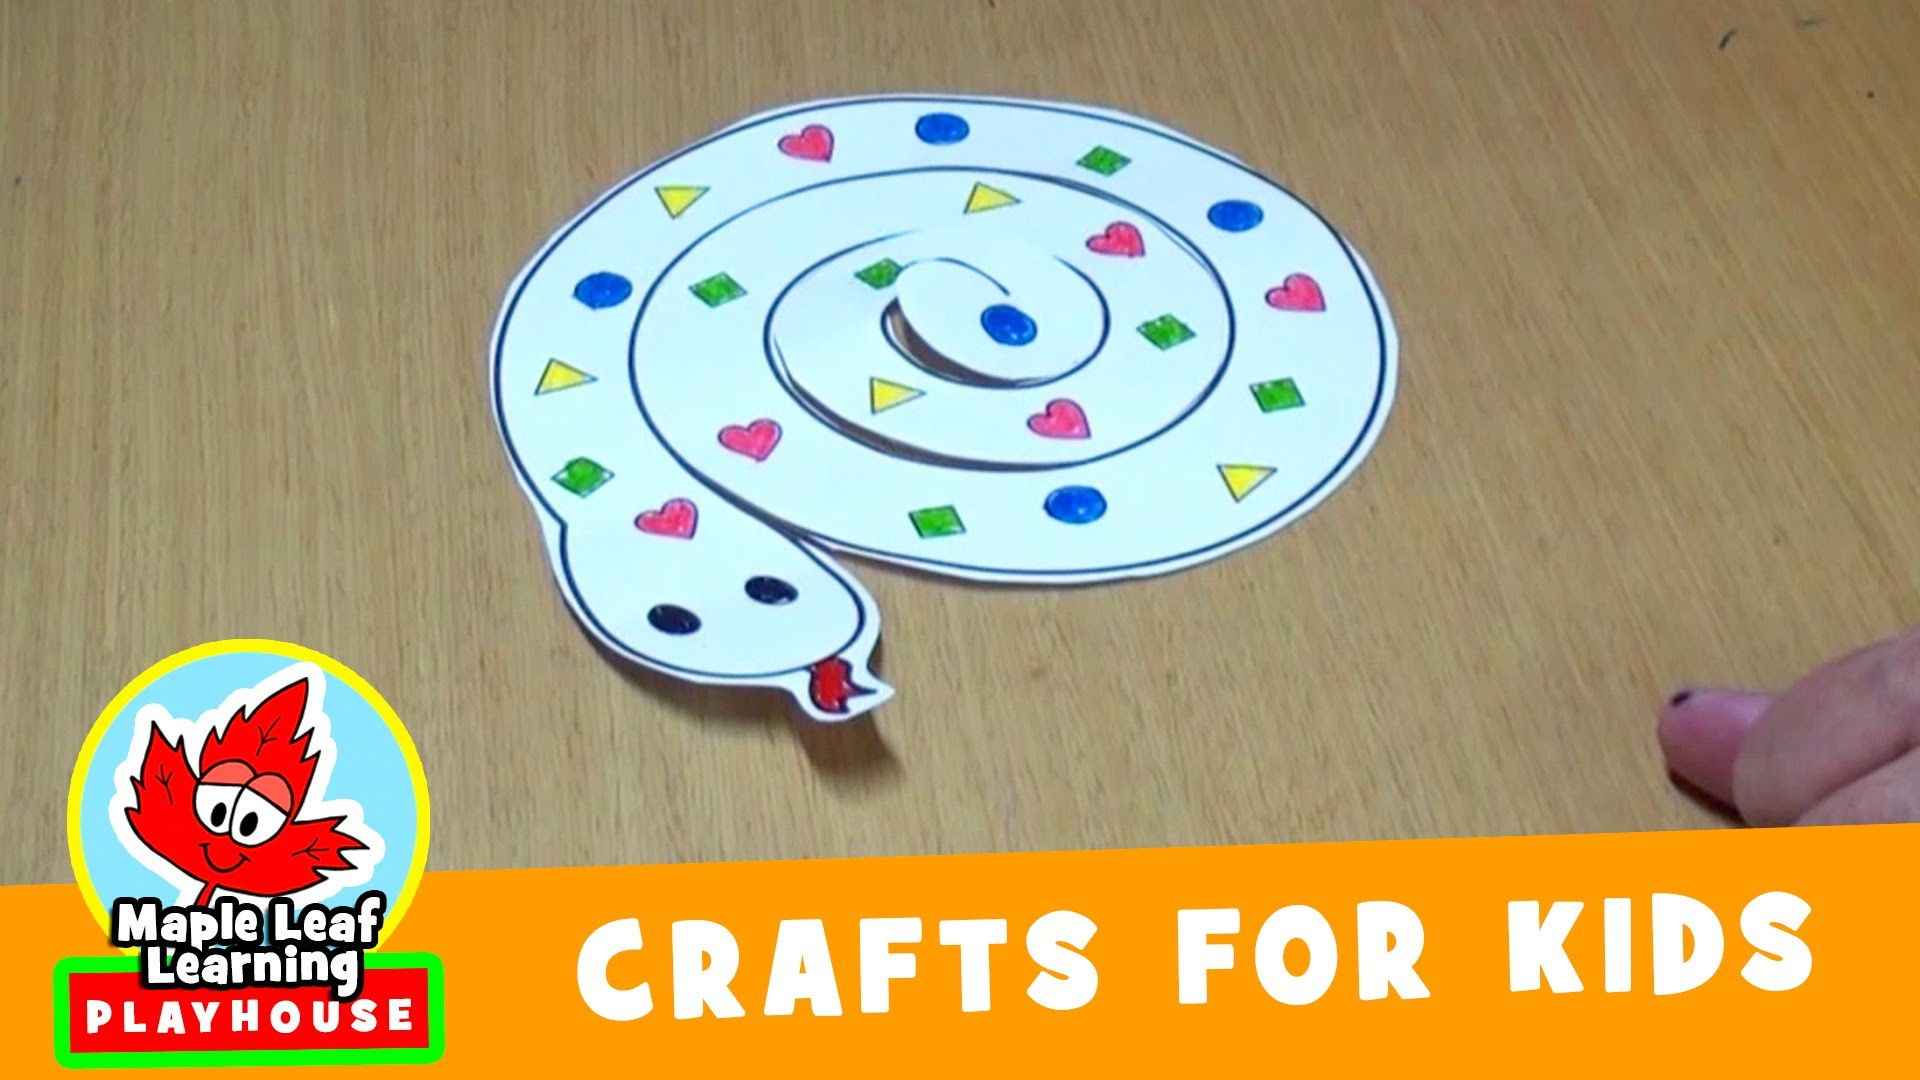 Snake Craft for Kids | Maple Leaf Learning Playhouse